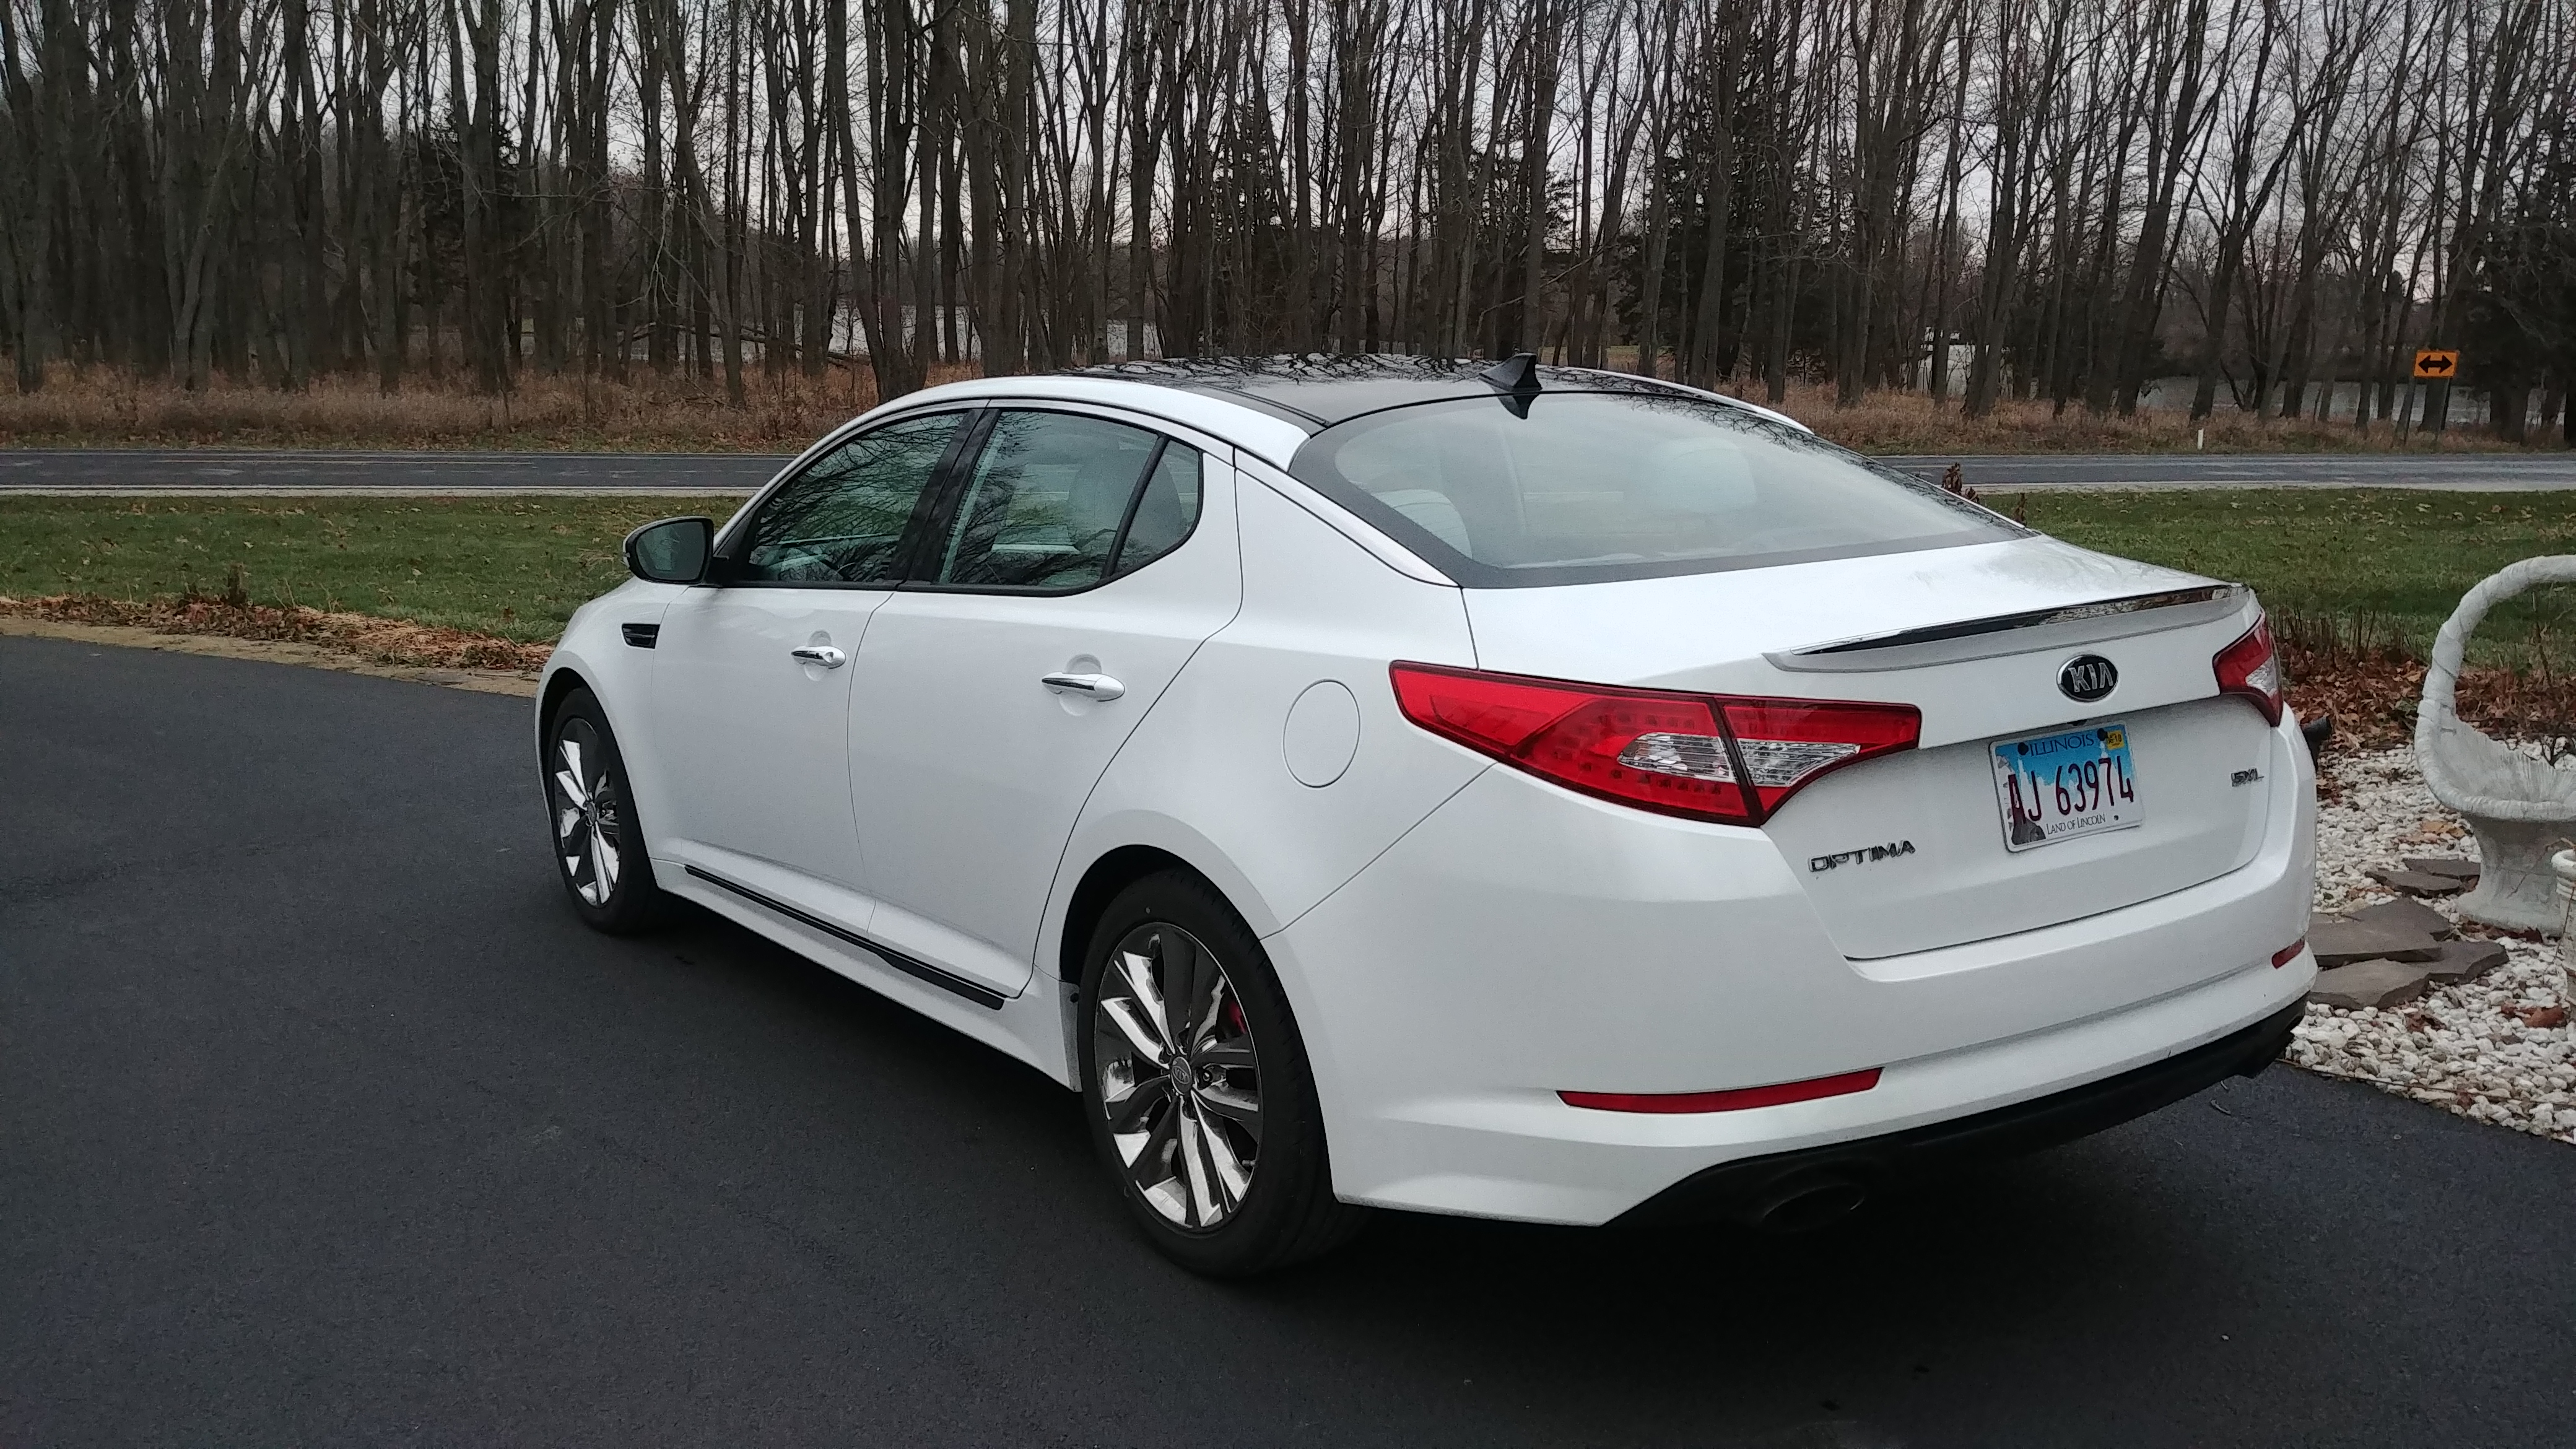 click sxl vroom mom sporty ride the optima one kia is see